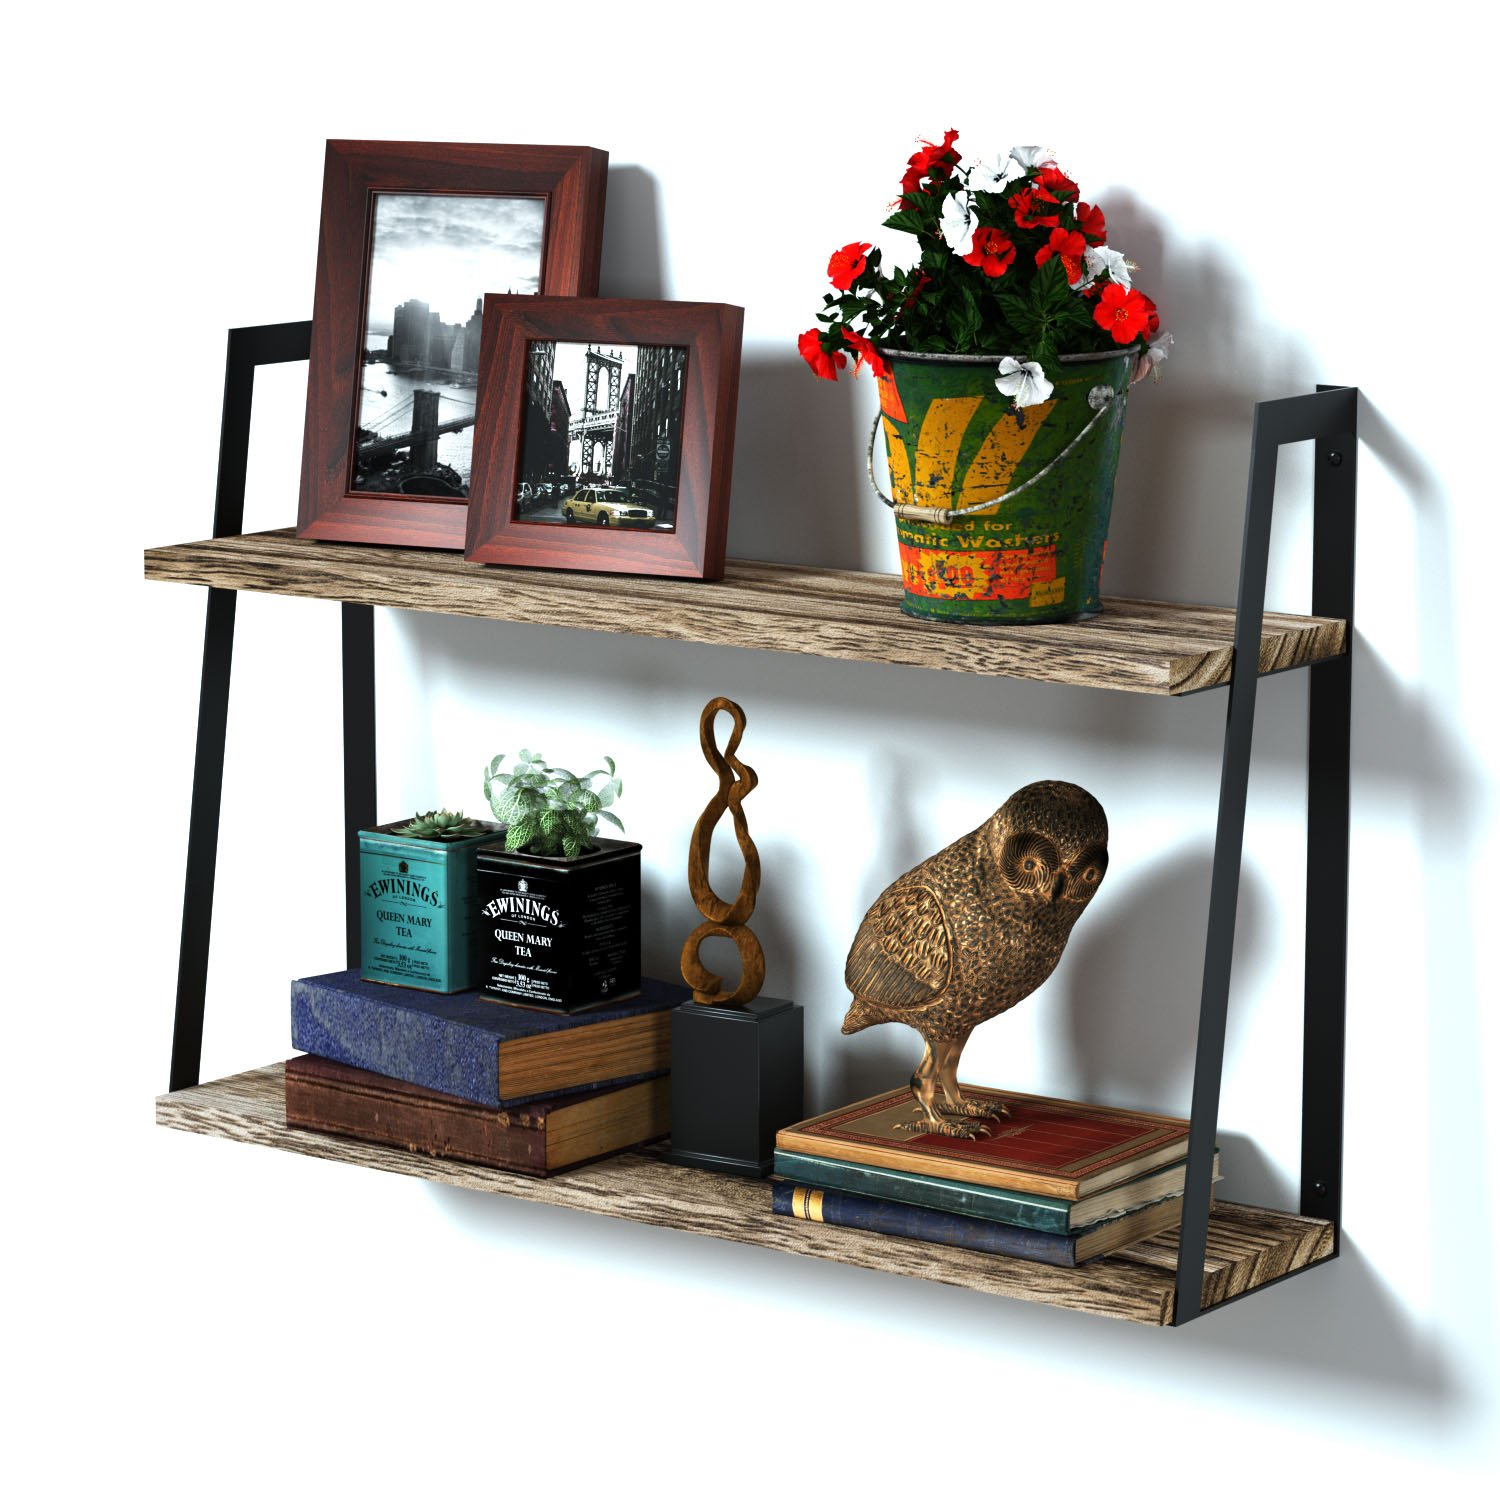 RooLee 2-Tier Floating Wall Mount Shelves Book Shelves Rustic Wood Shelves Perfect Decor for Any Room